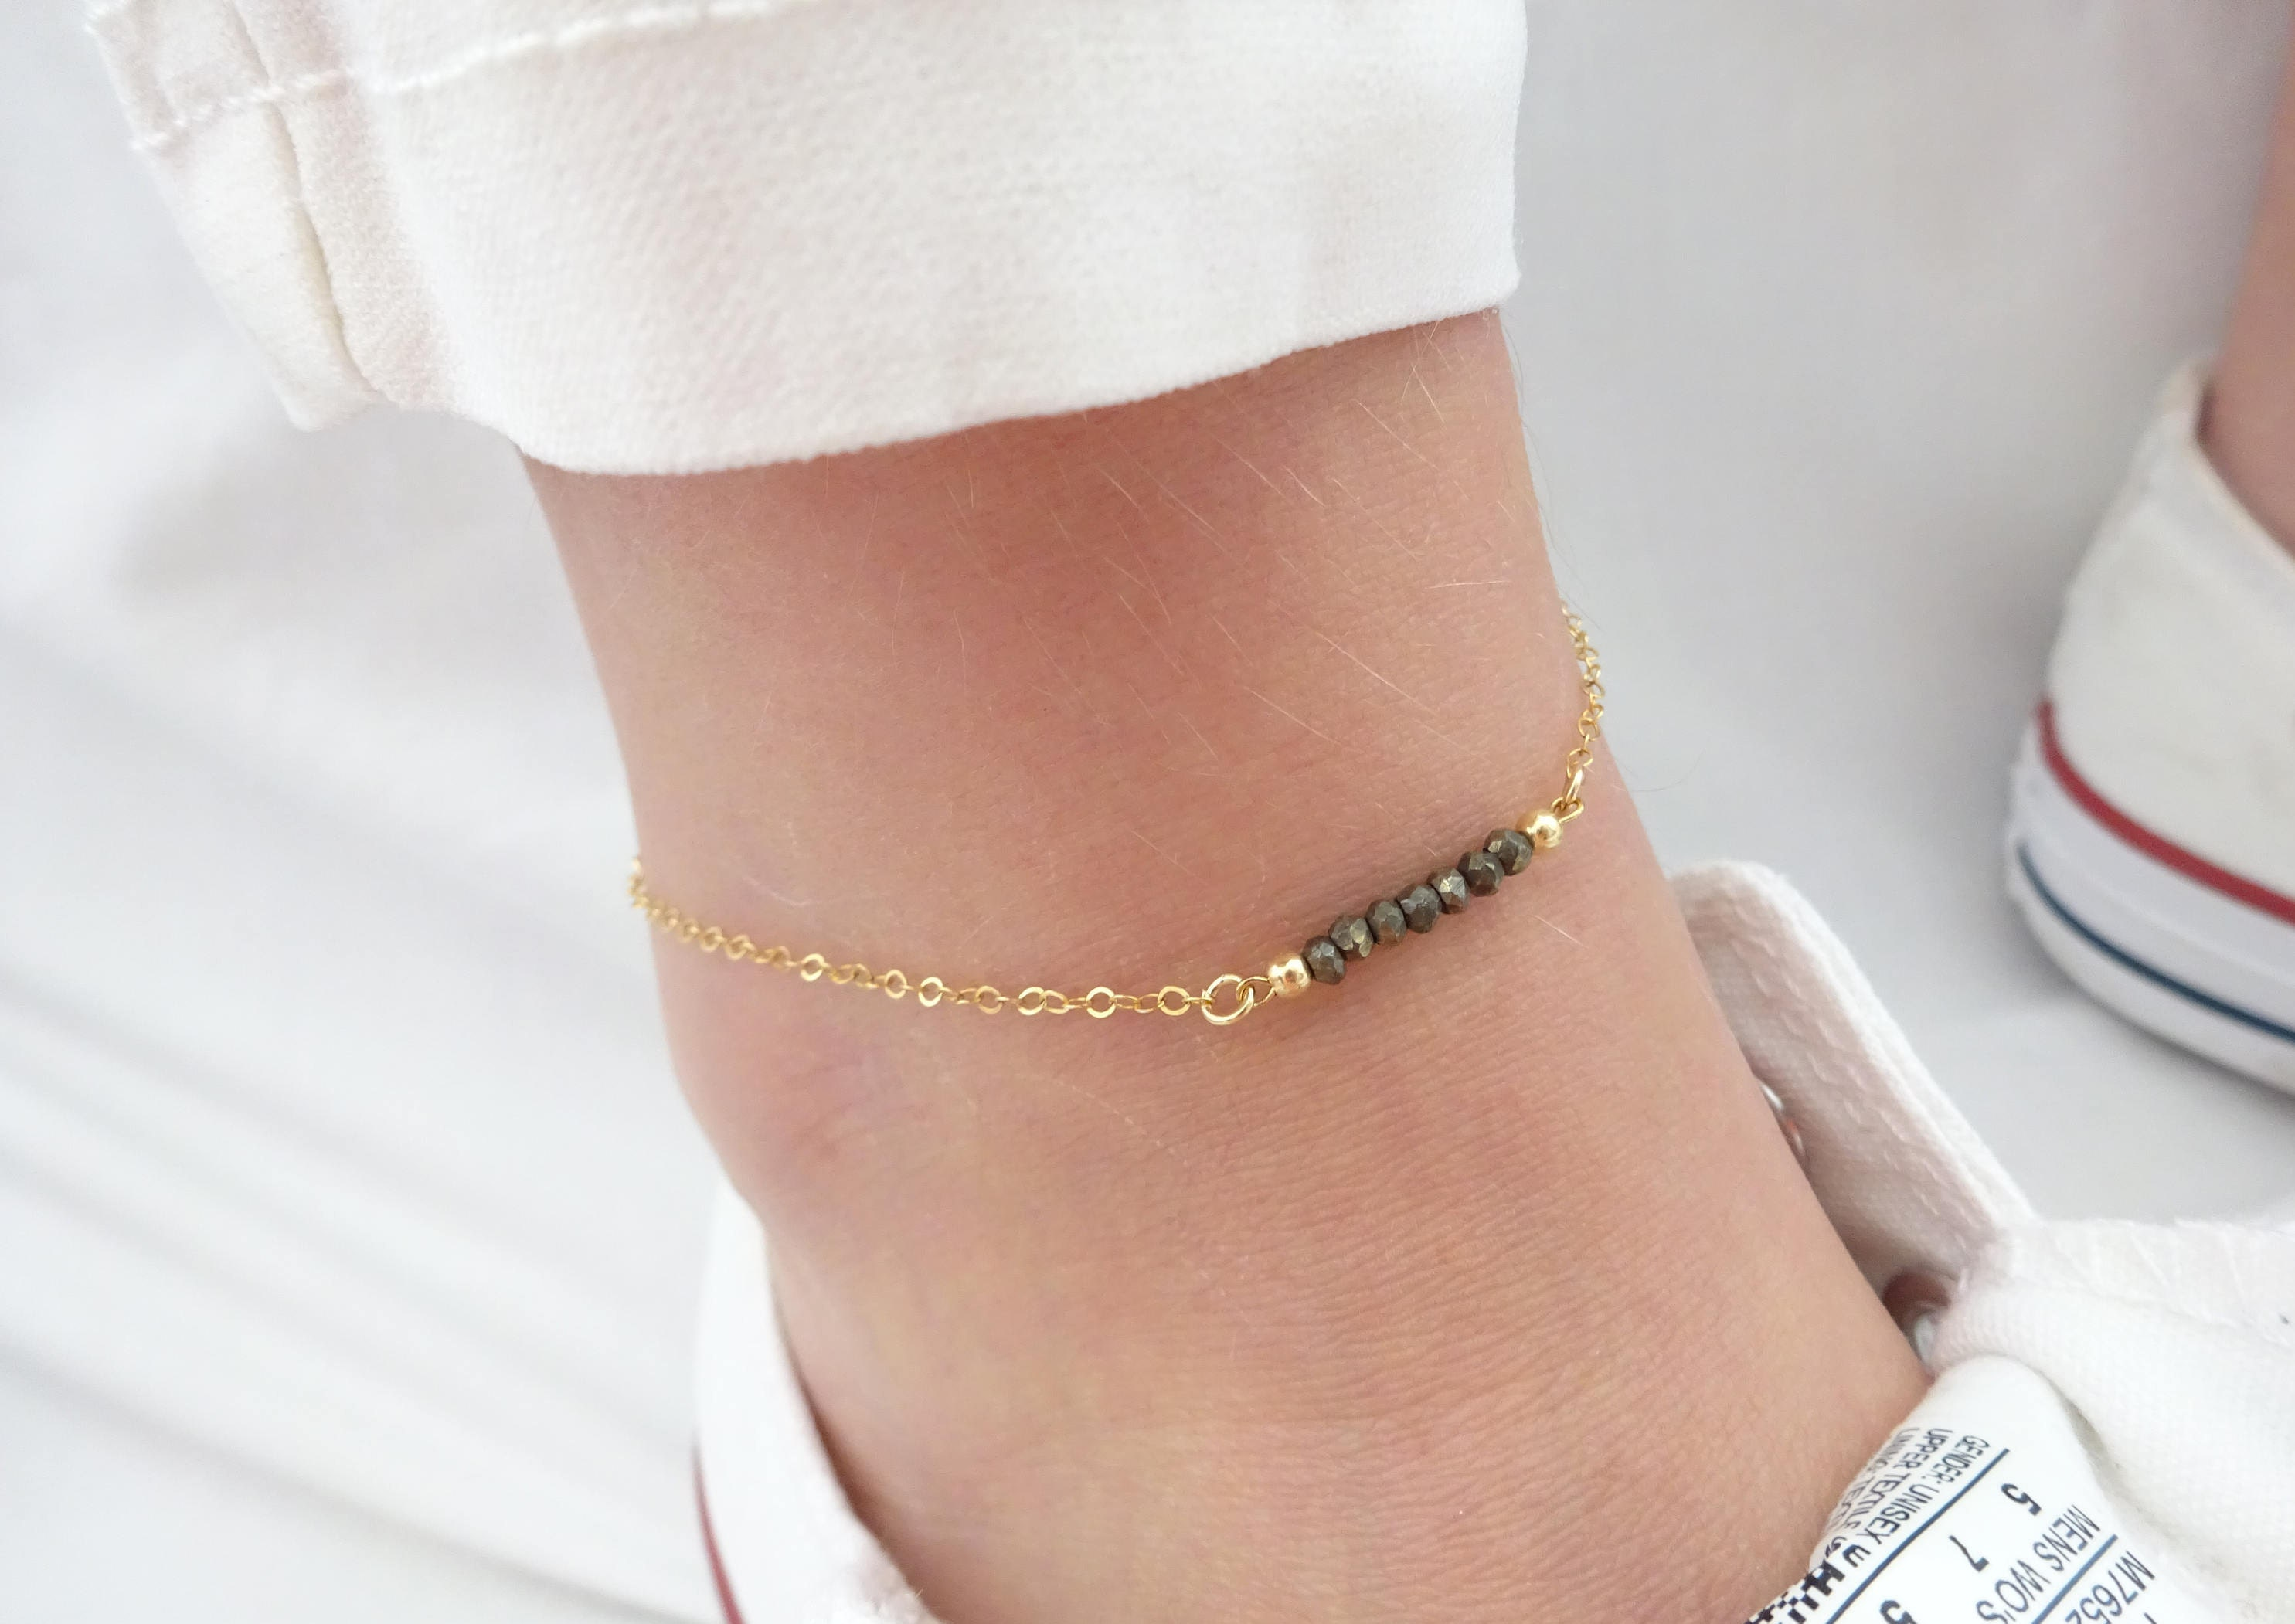 cute for charms beach store product sandals women rose solid gold anklet chain braceelts barefoot jewelry sliver bracelets fashion foot